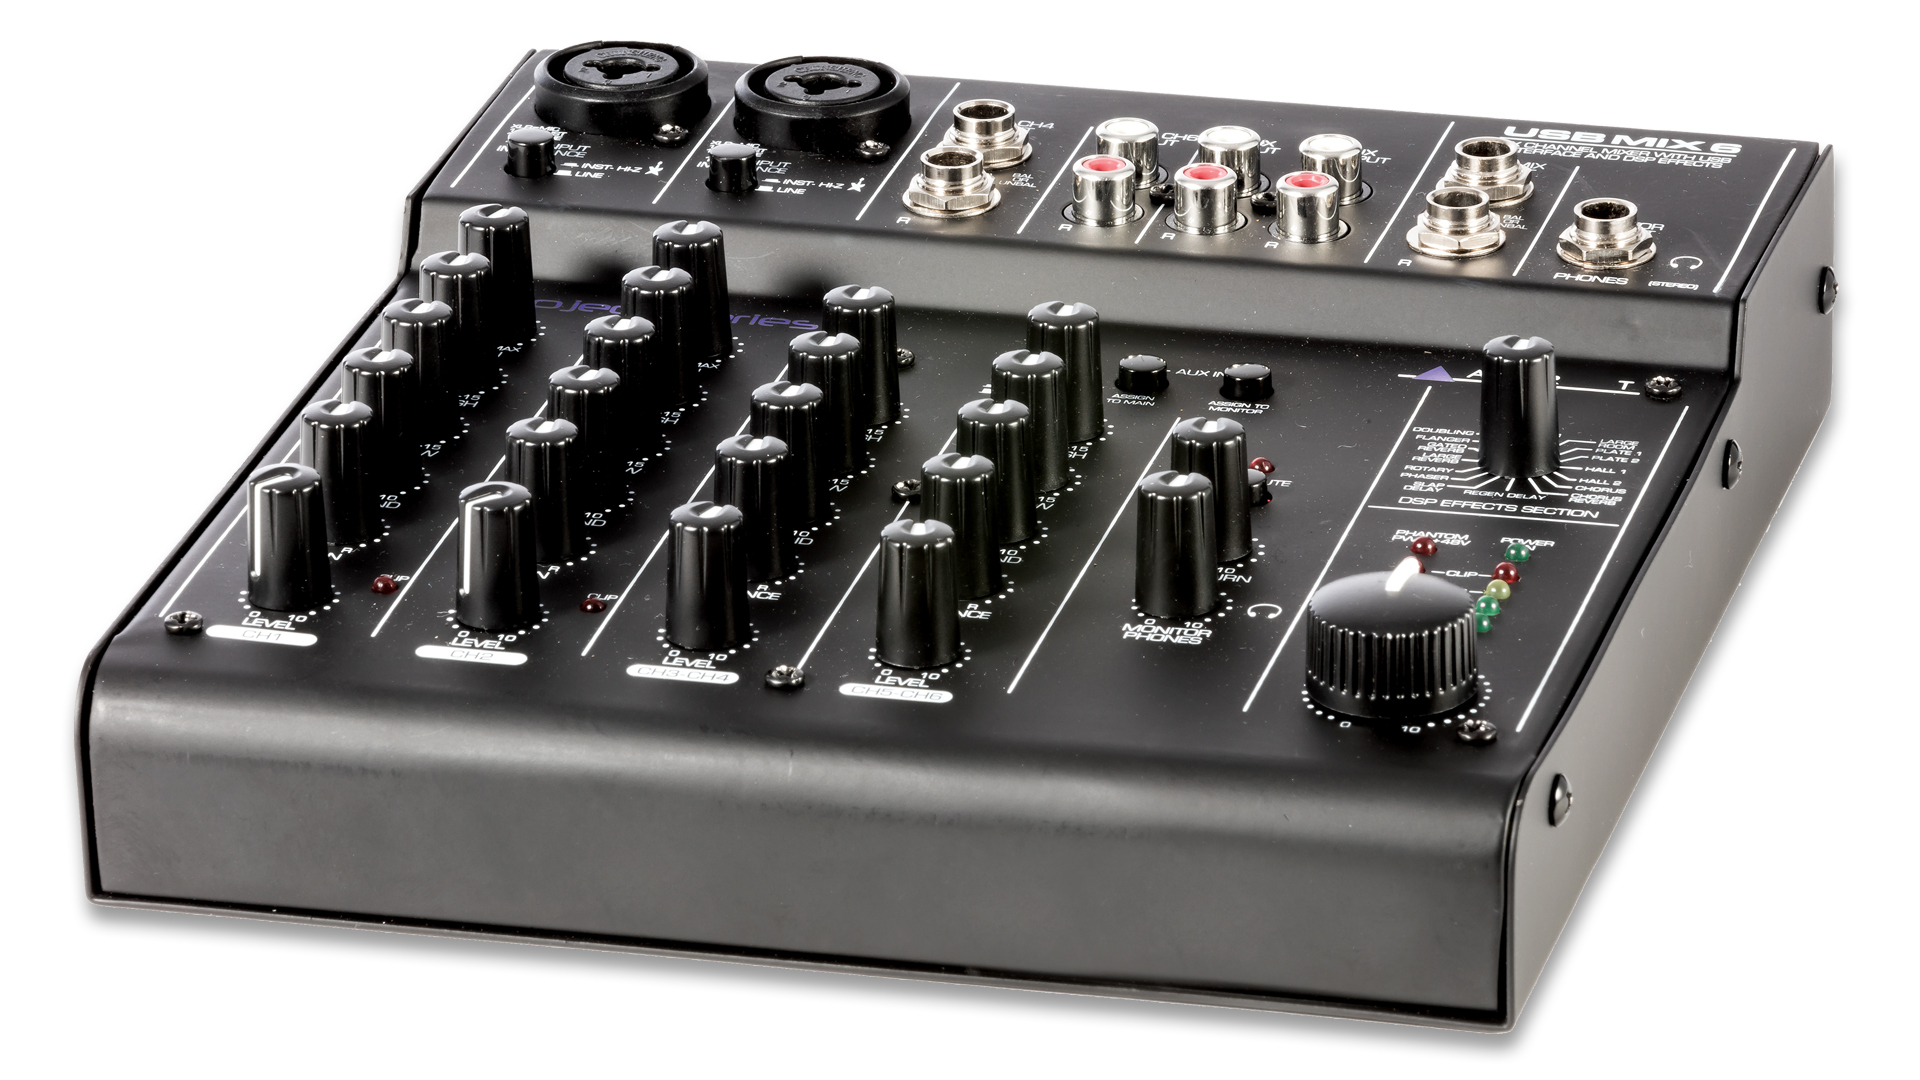 usbmix6 six channel mixer usb audio interface art pro audio. Black Bedroom Furniture Sets. Home Design Ideas